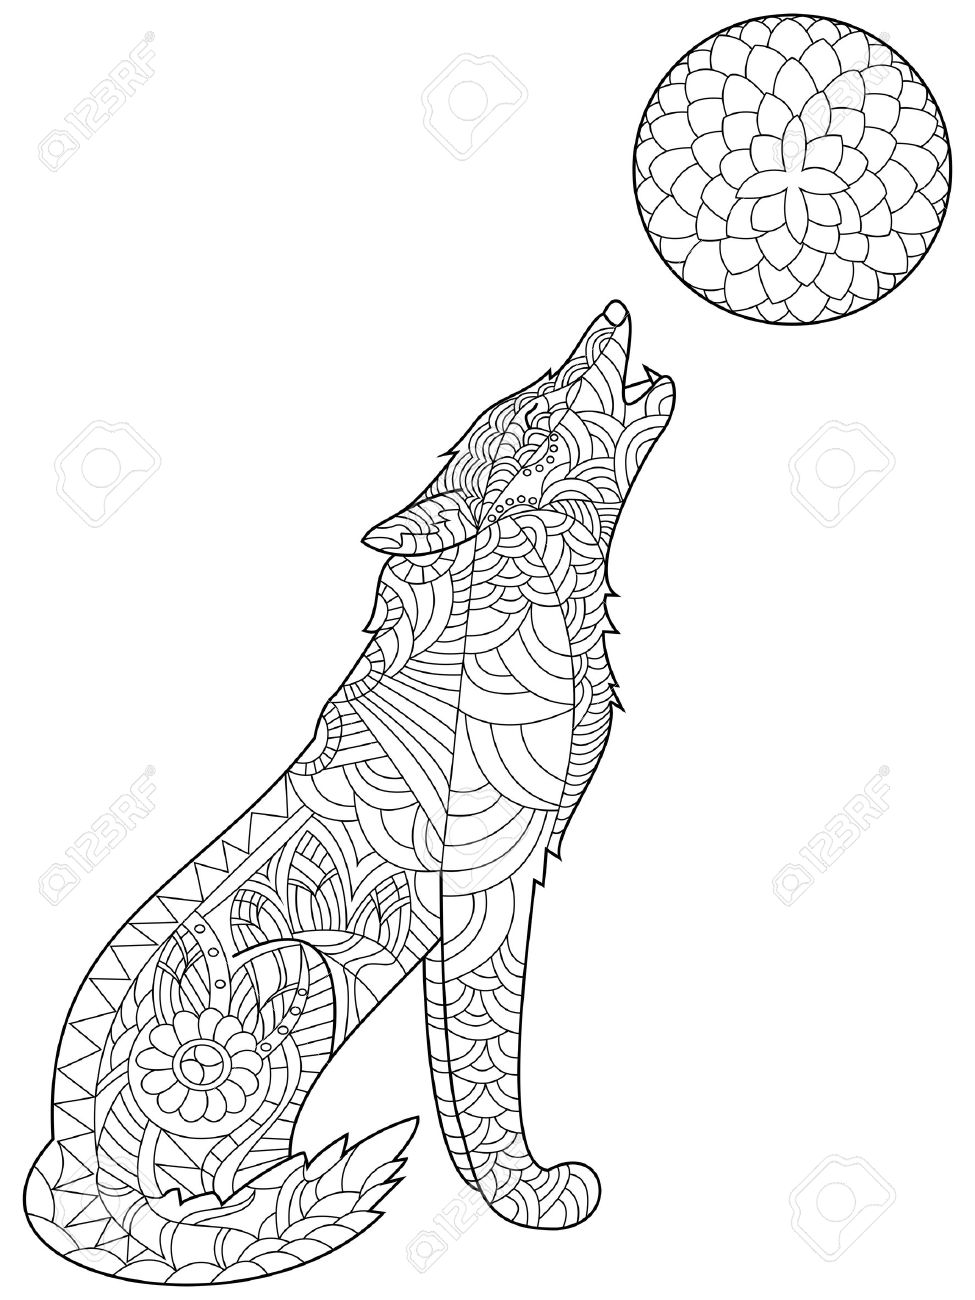 wolf coloring book for adults vector illustration anti stress coloring for adult zentangle - Wolf Coloring Book